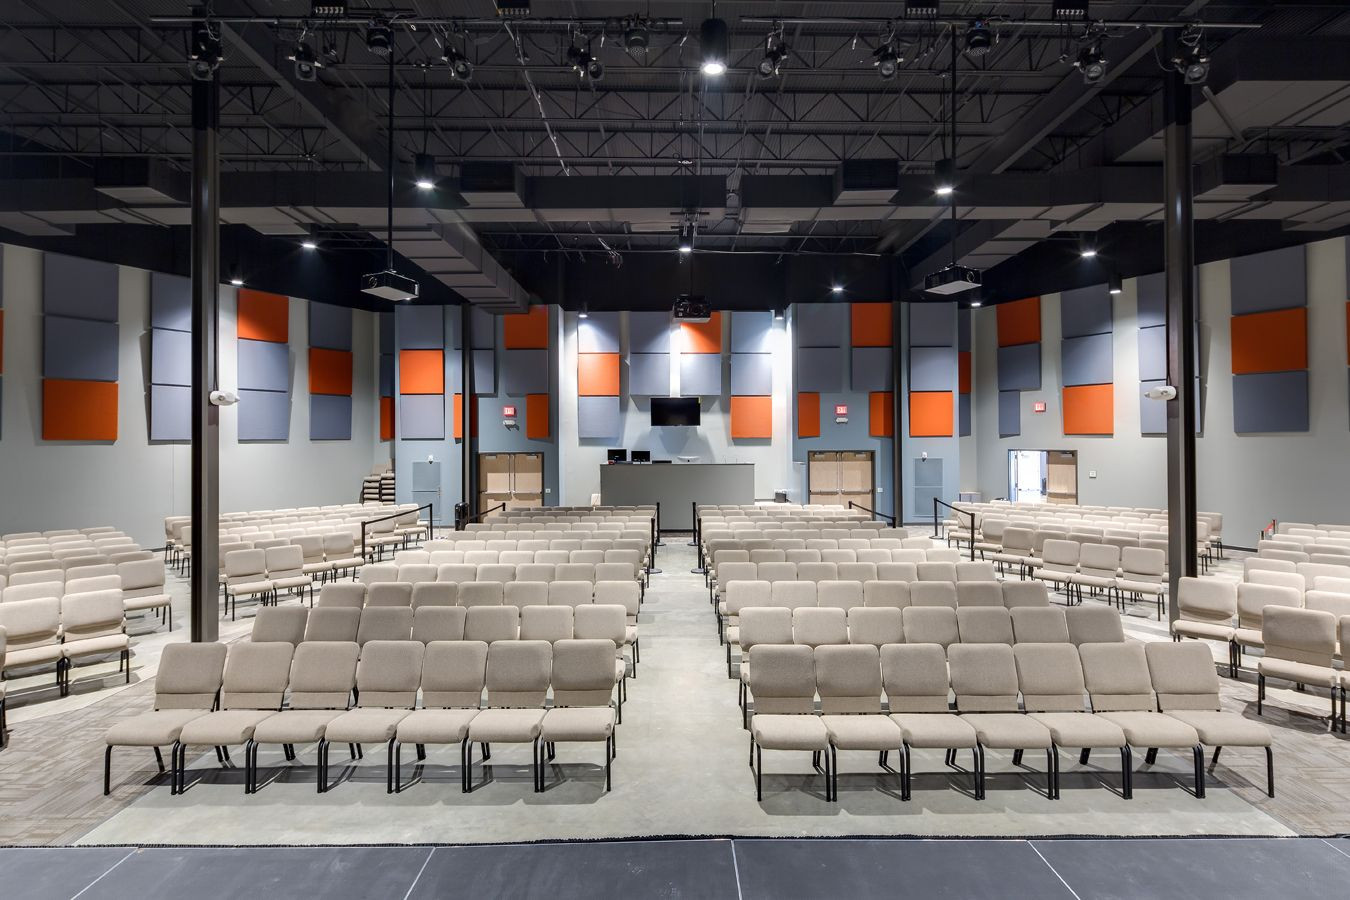 Warren Baptist Church Grovetown Campus Worship Center   Augusta, GA  (designed By A Partner At Equip Studio While At A Previous Firm).